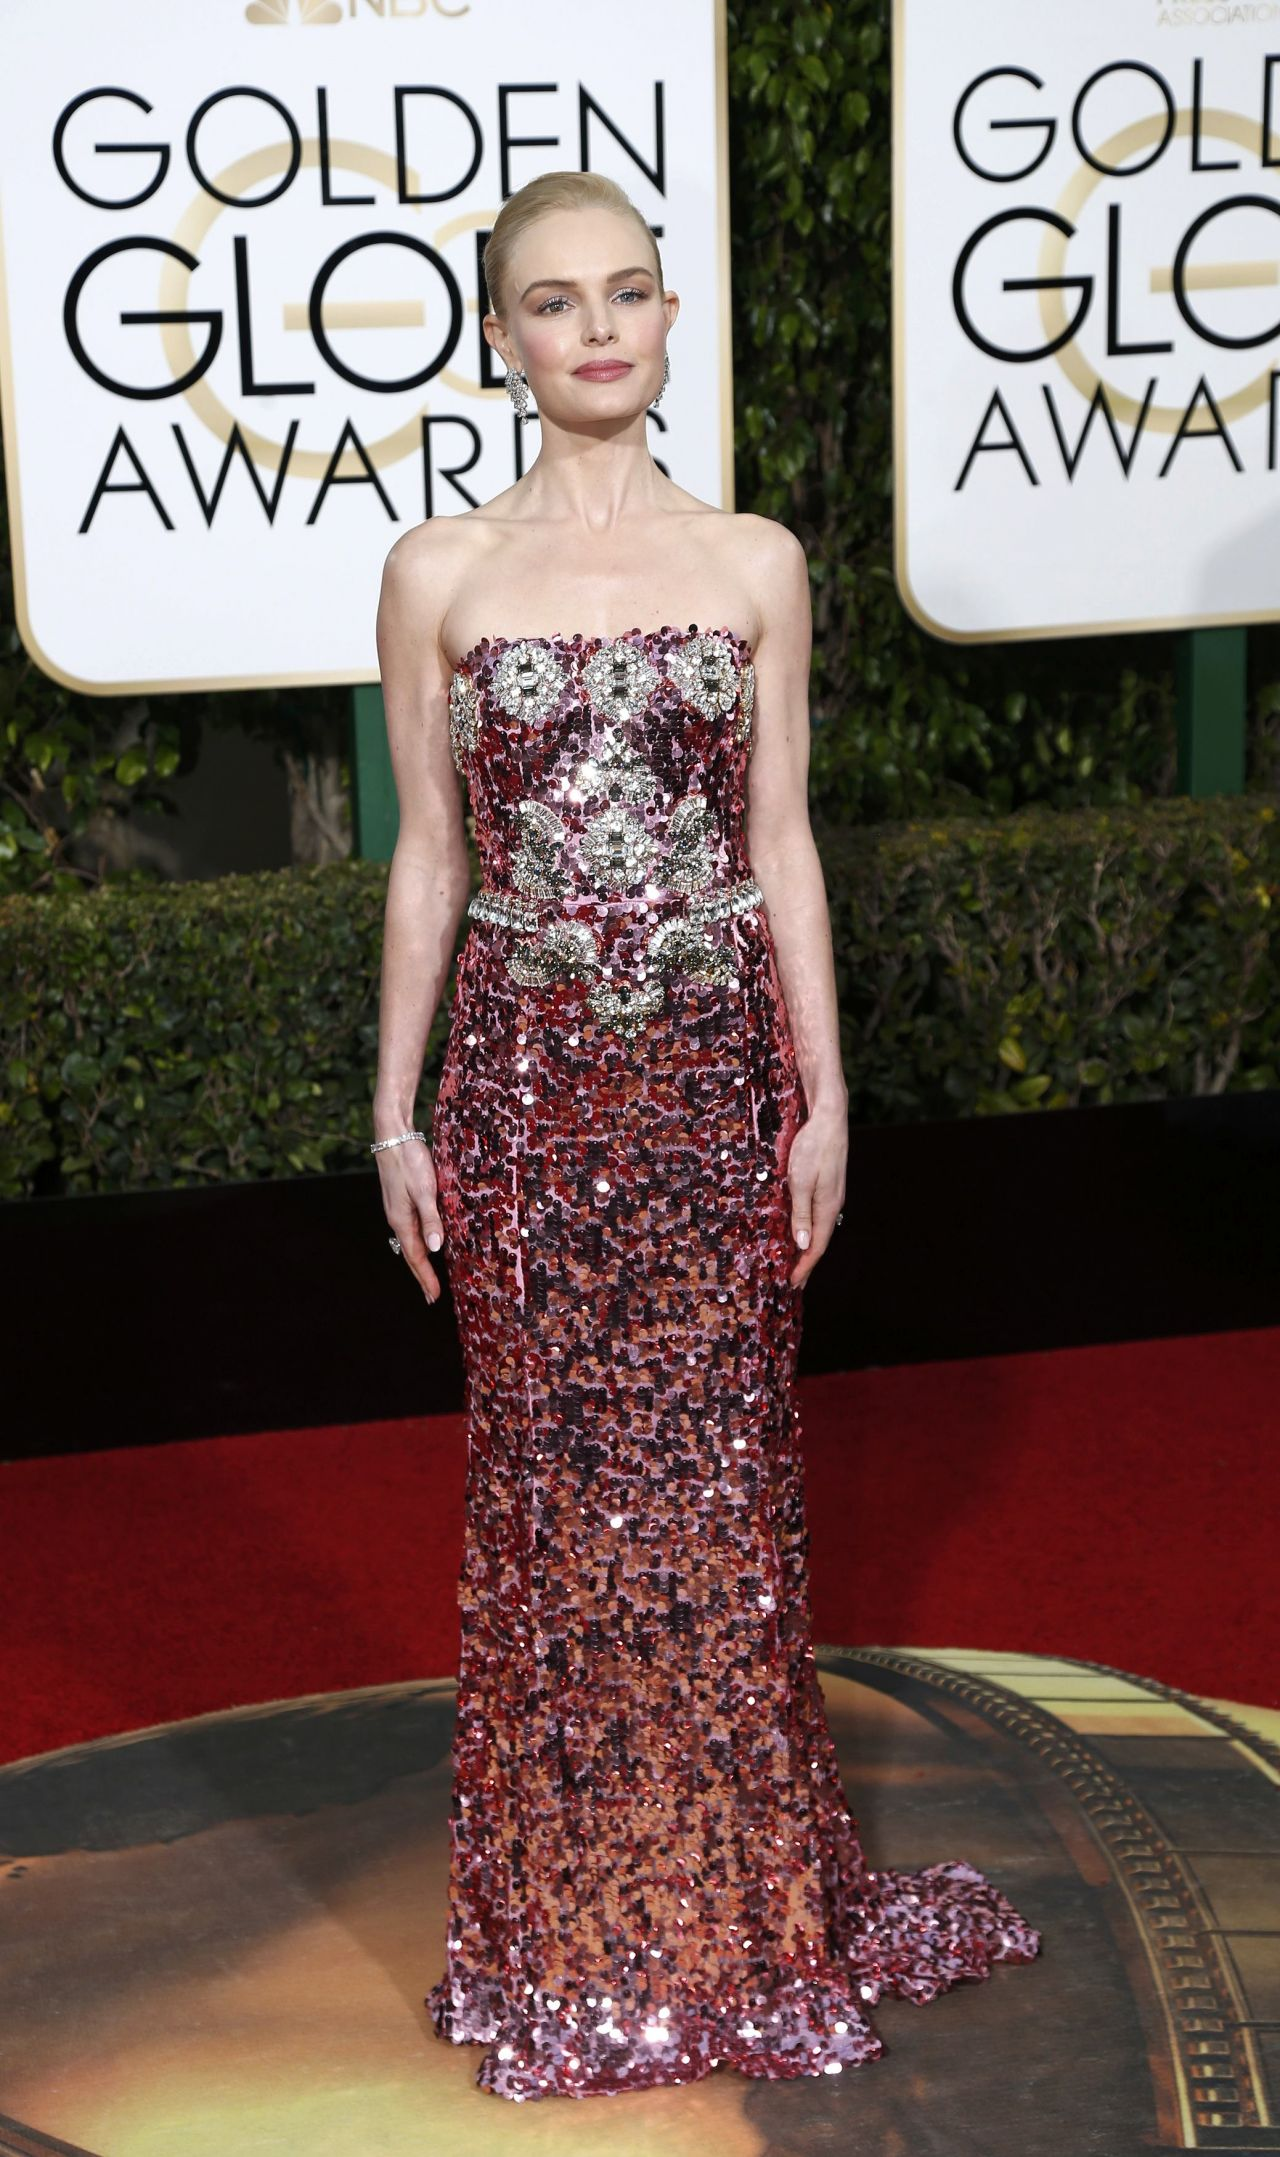 kate-bosworth-2016-golden-globe-awards-in-beverly-hills-2